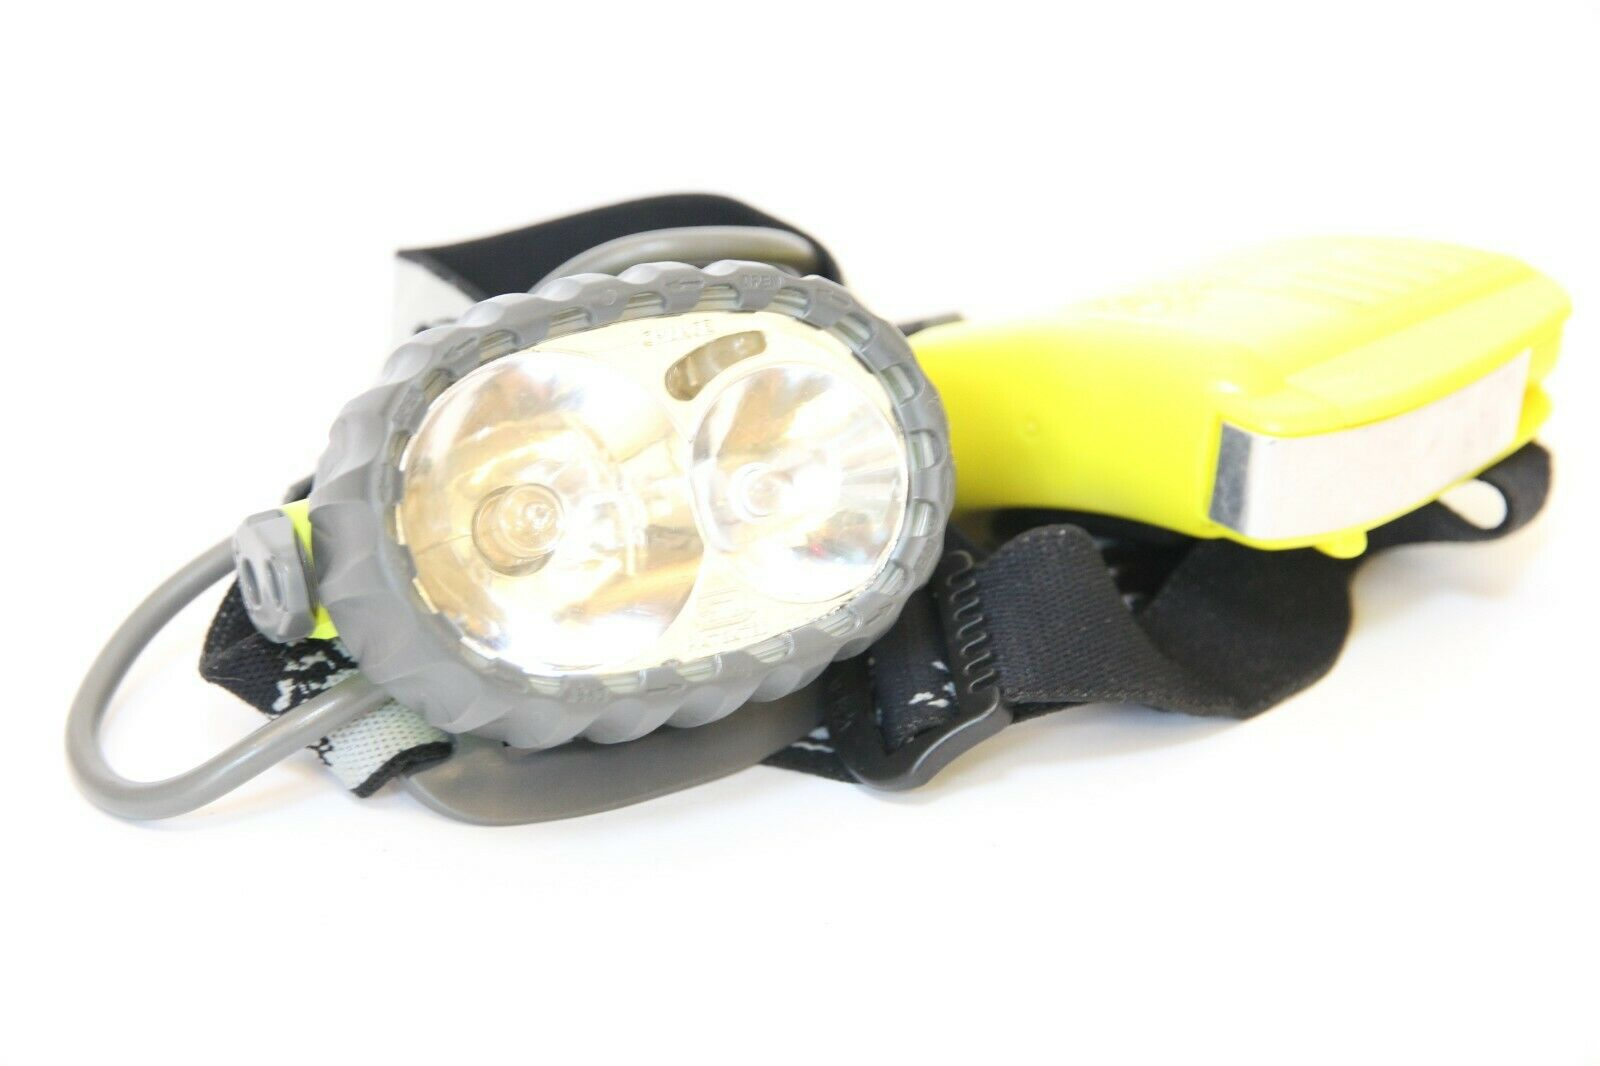 PETZL Duo Headlamp Headtorch Camping Zoom Headlight Flashlight Water Resistant